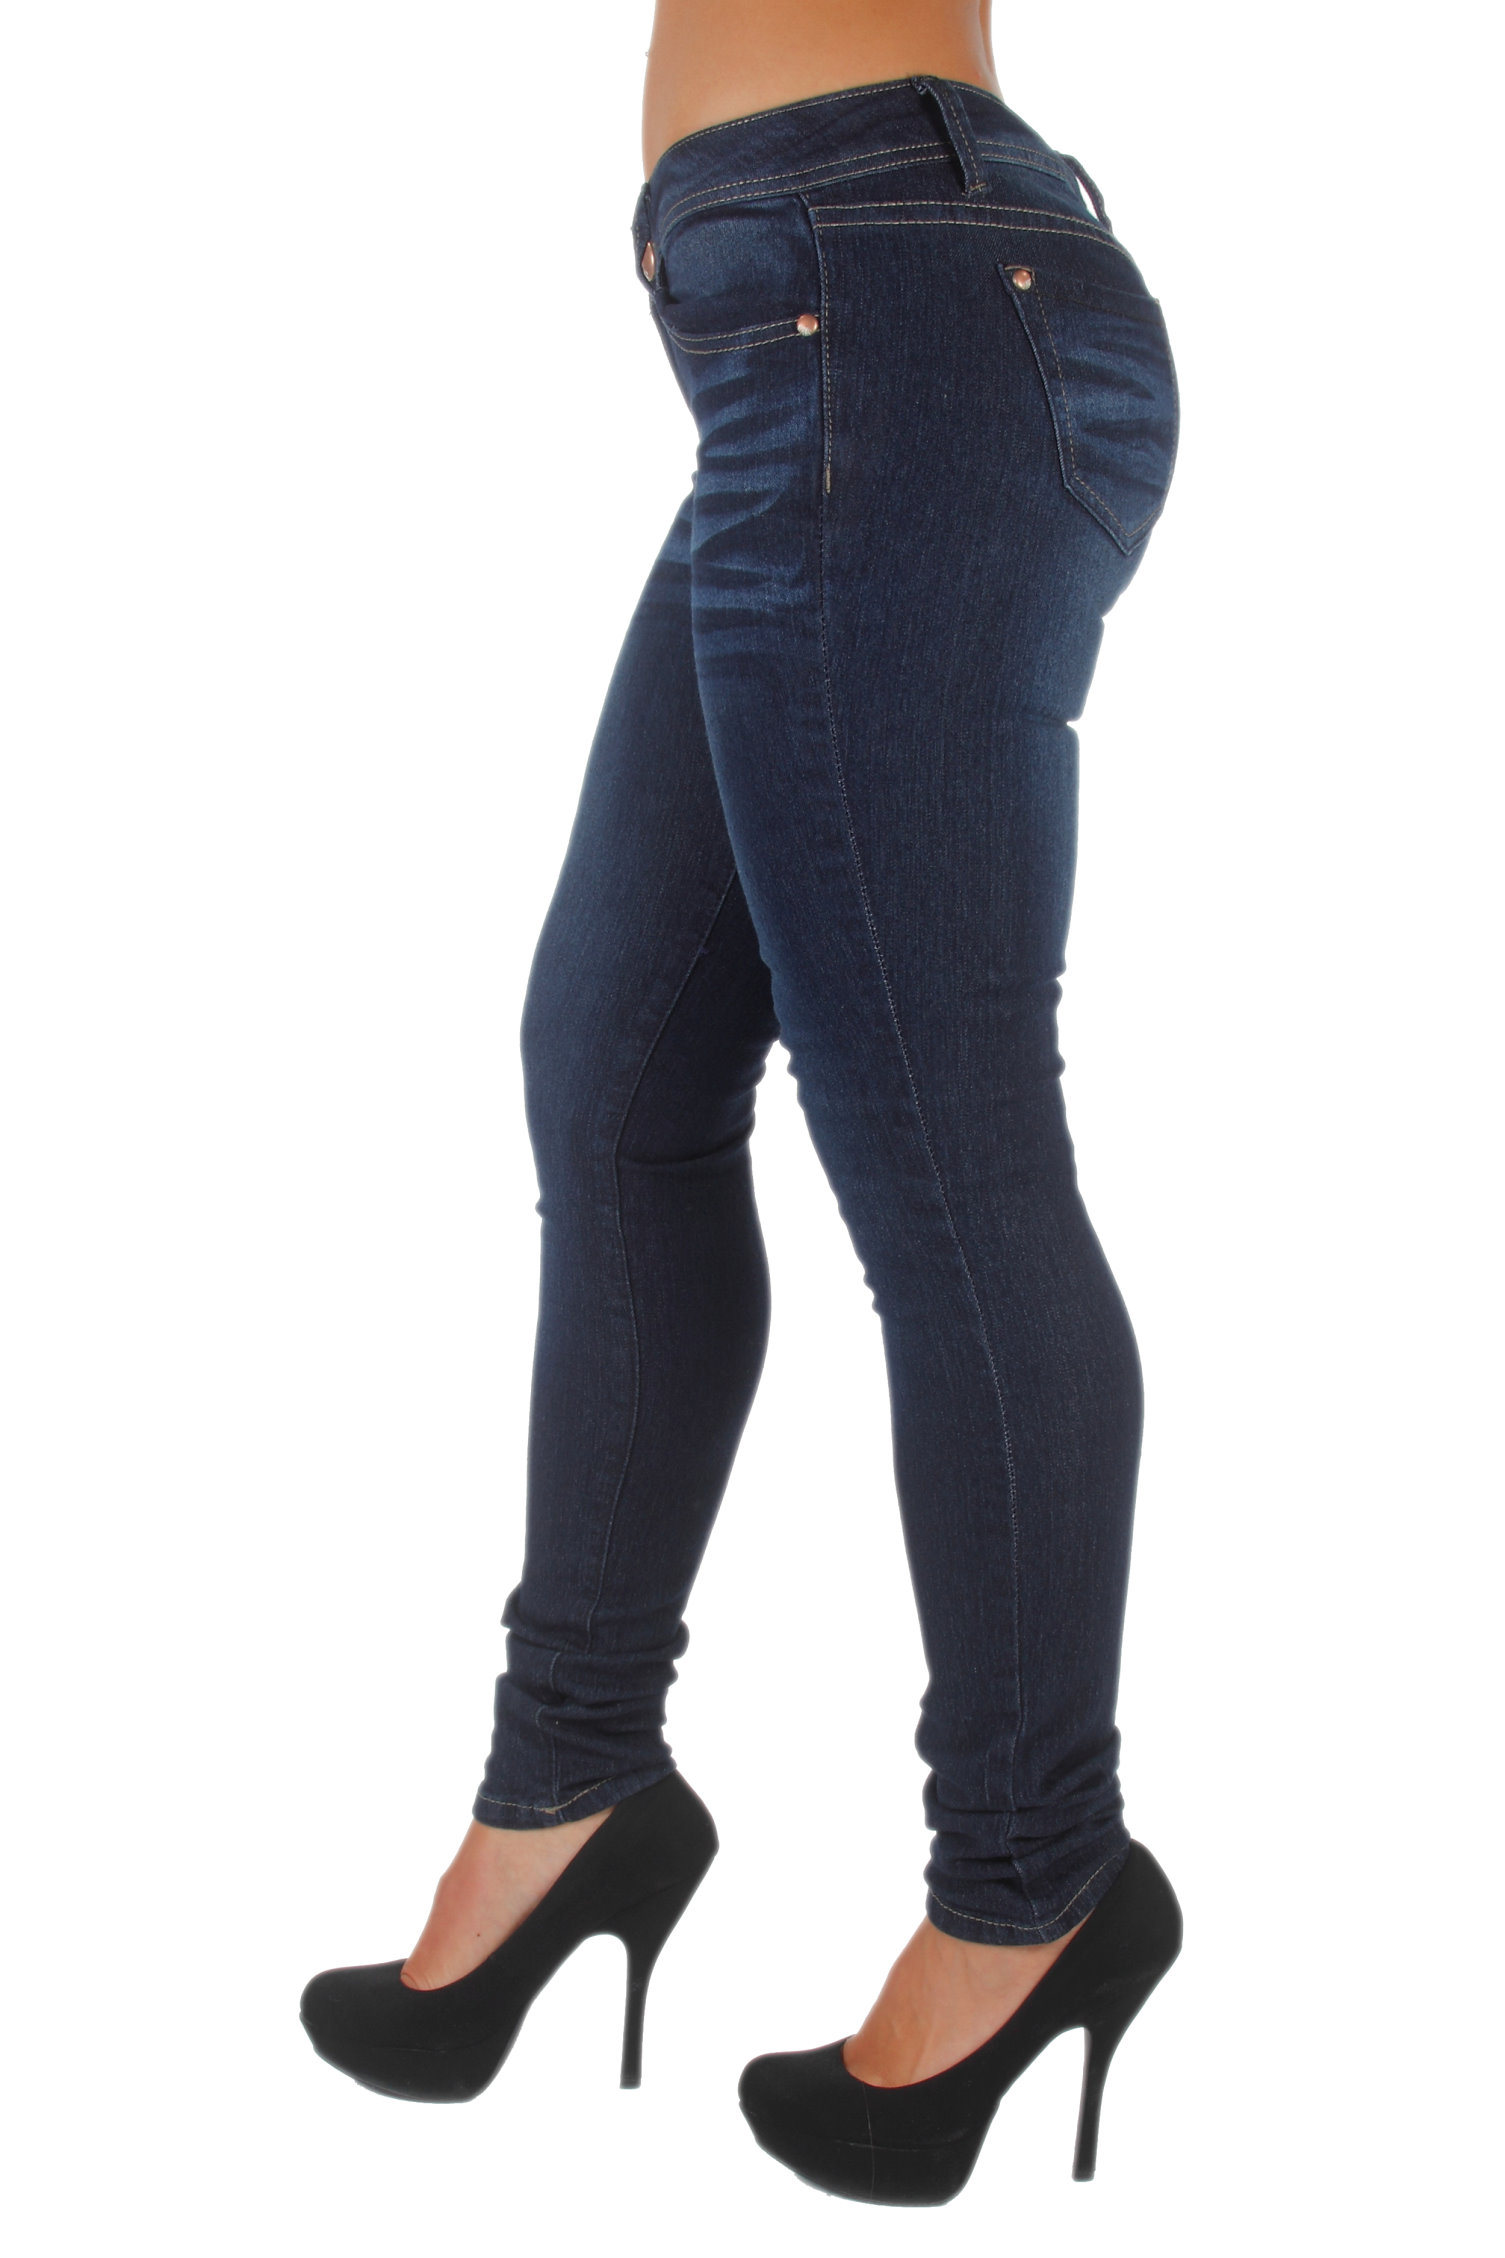 Plus-Size-Classic-5-Pockets-Washed-Skinny-Jeans thumbnail 9